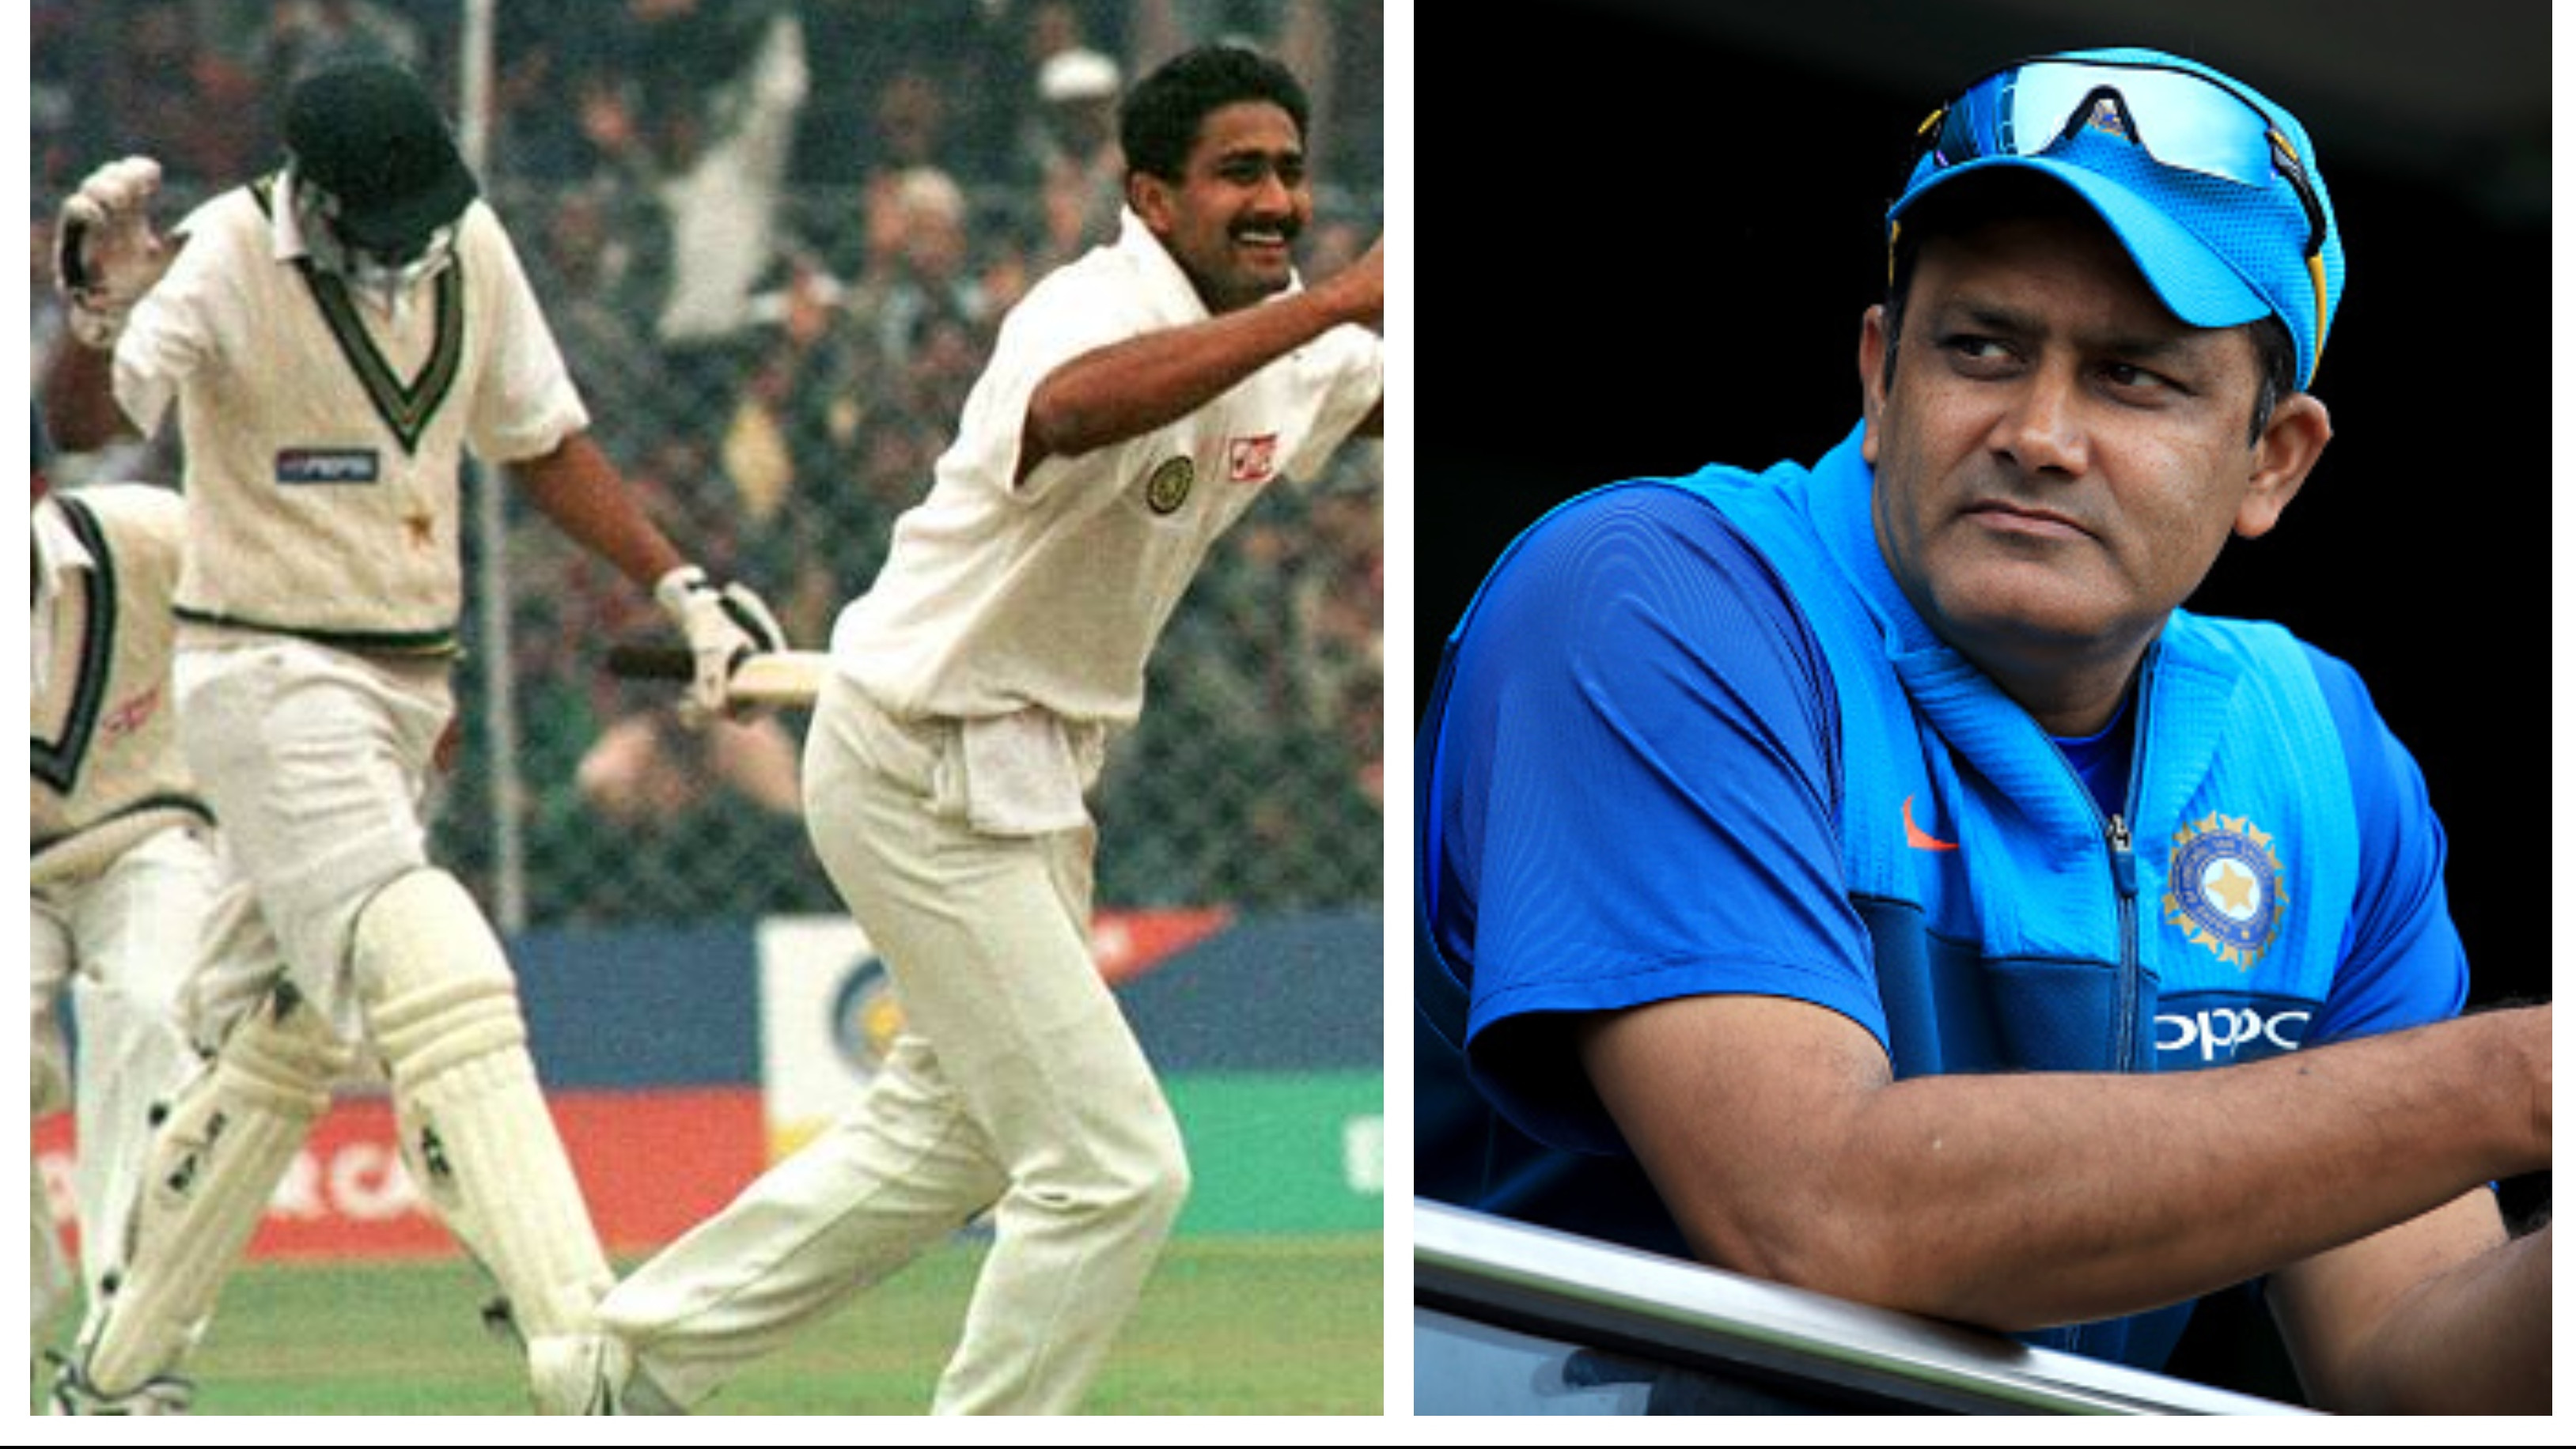 Anil Kumble still remembers every dismissal of his historic 10 wickets against Pakistan in 1999